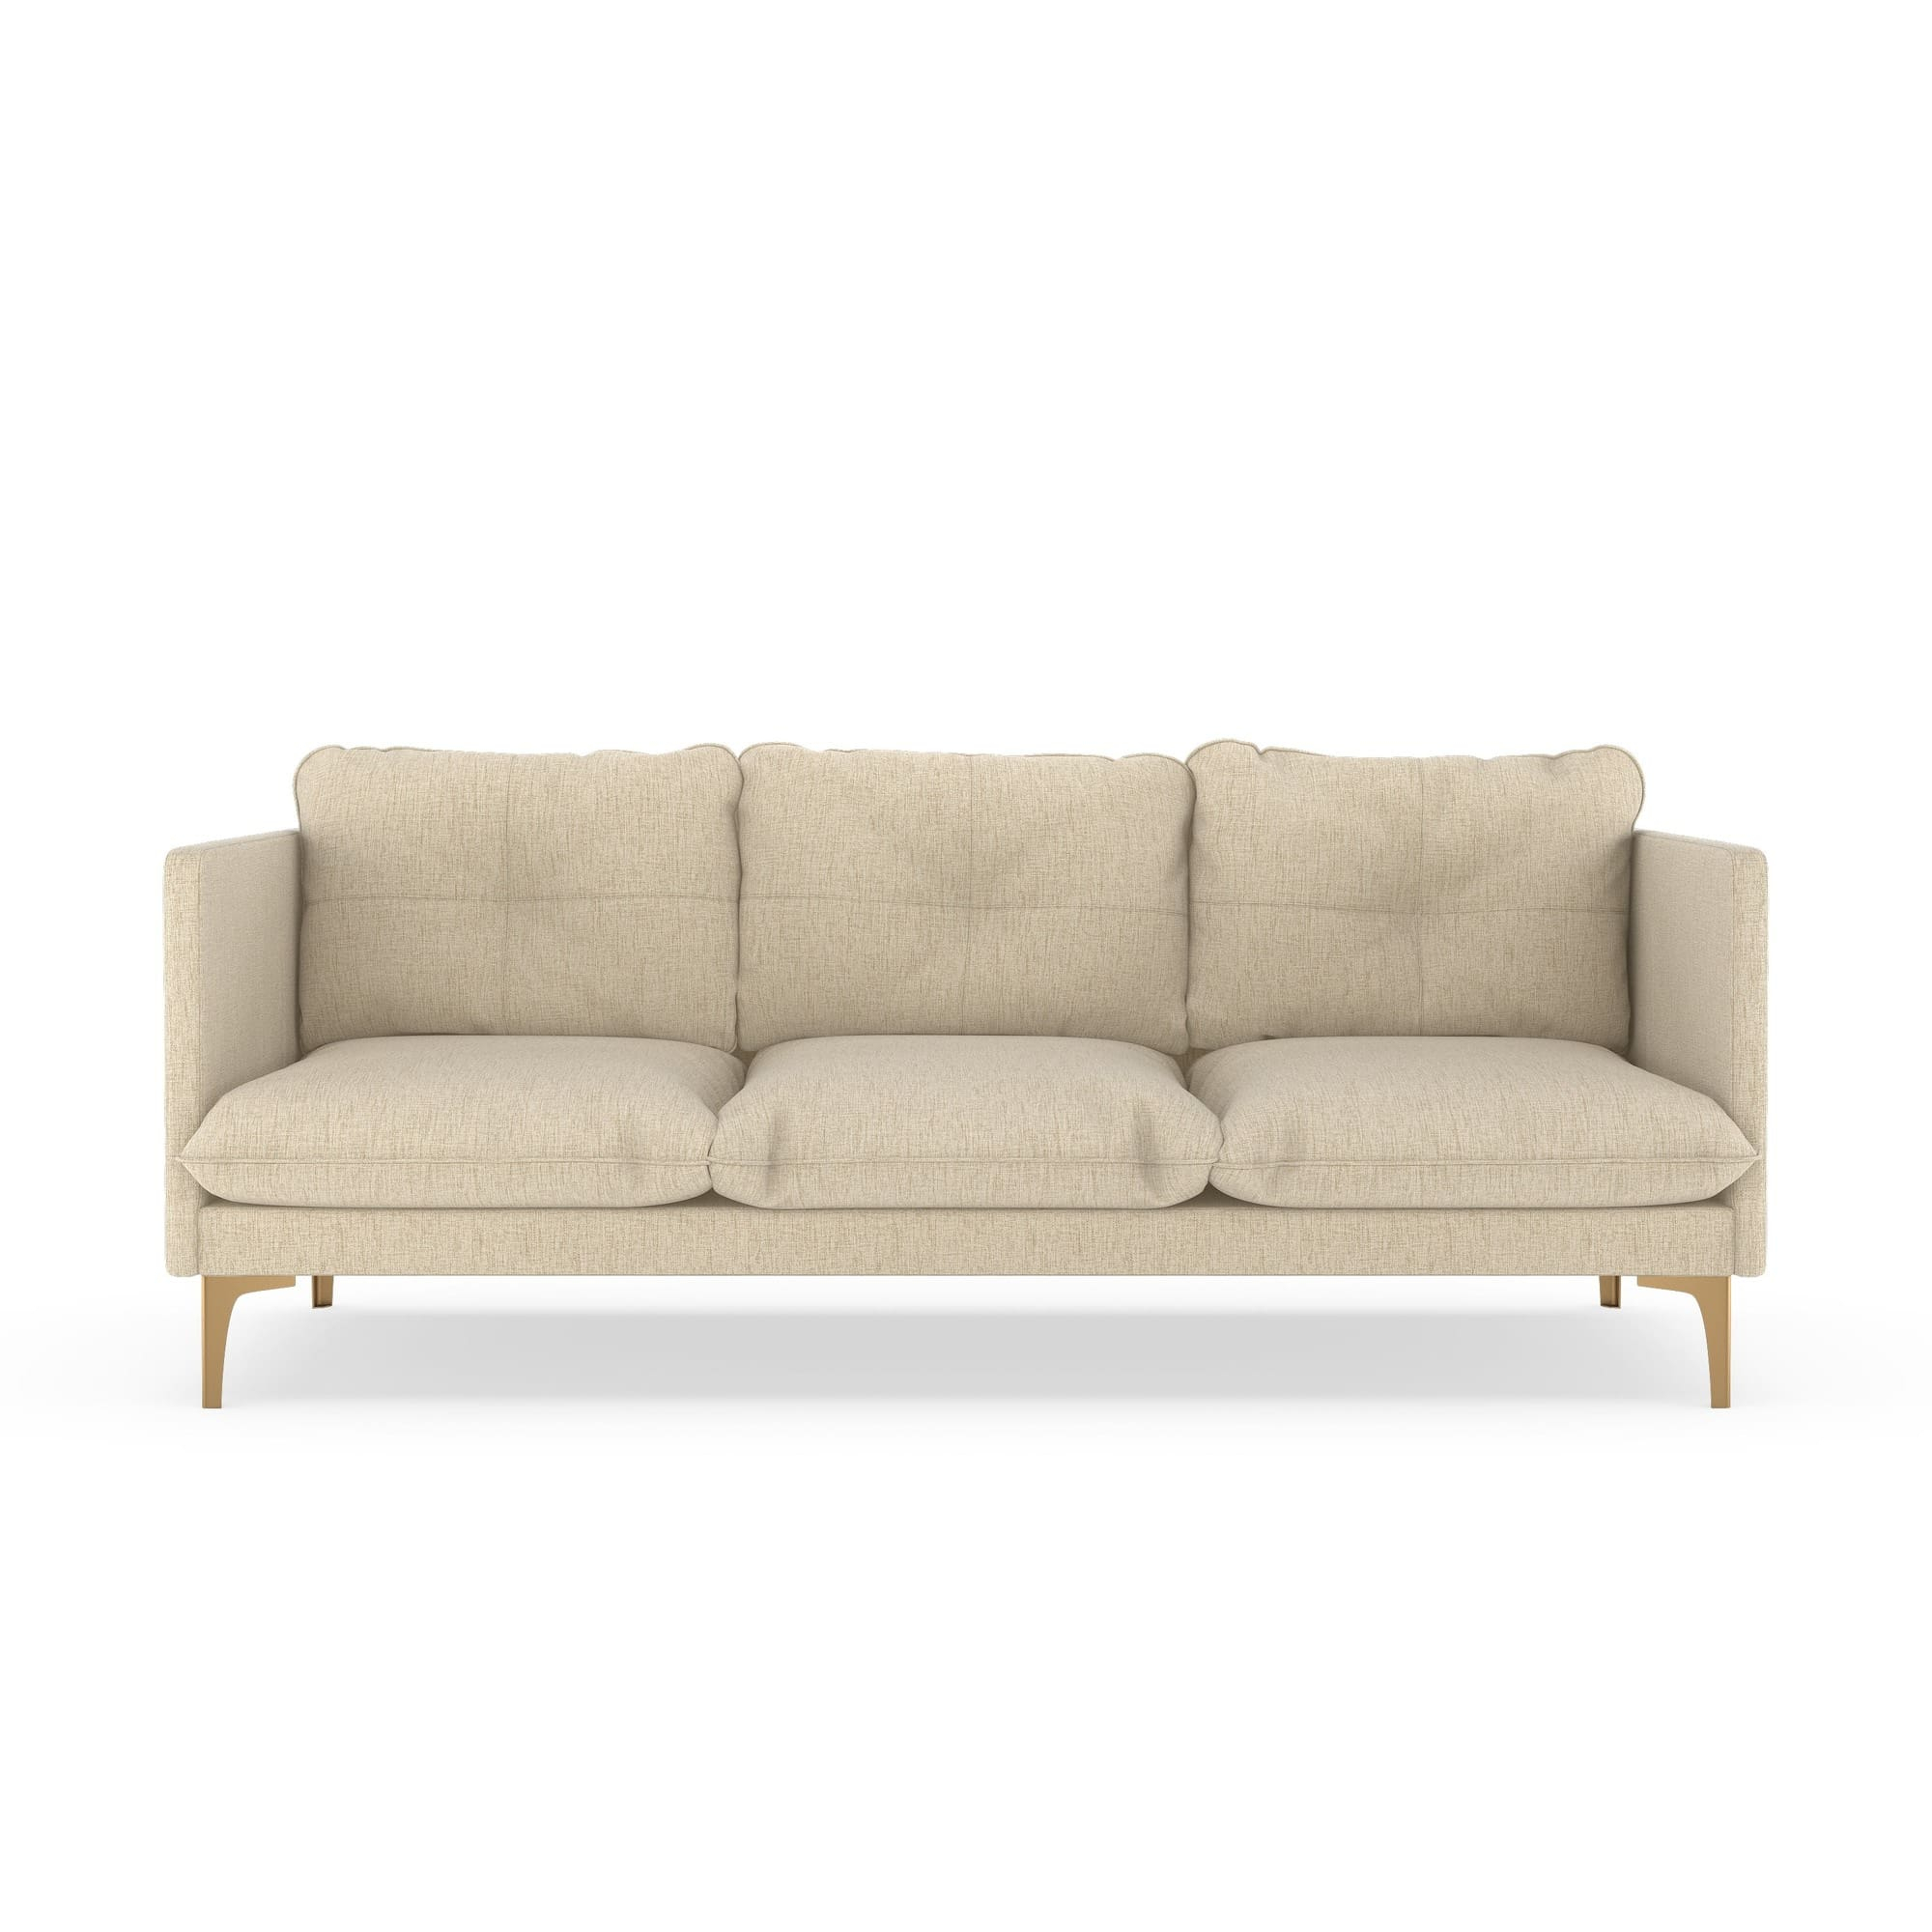 Nye Koncept Rory Seashell Pebble Weave Sofa With Brass Leg & Reviews Pertaining To Rory Sofa Chairs (View 16 of 25)